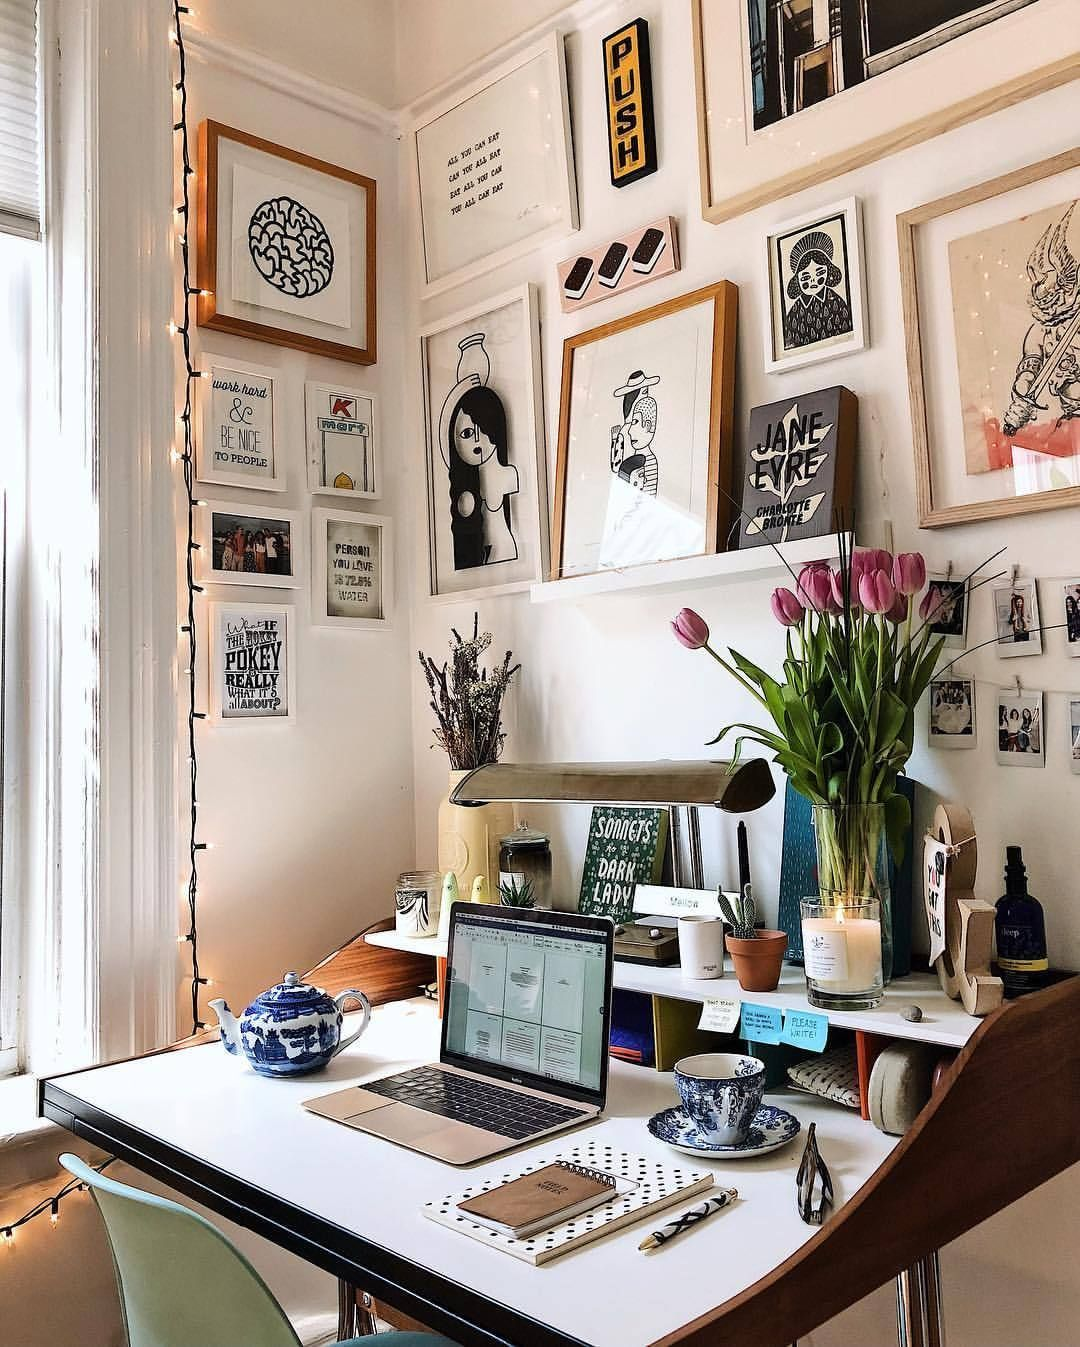 25 Small Home Office Ideas For Men Amp Women Space Saving Layout Quirky Home Decor Home